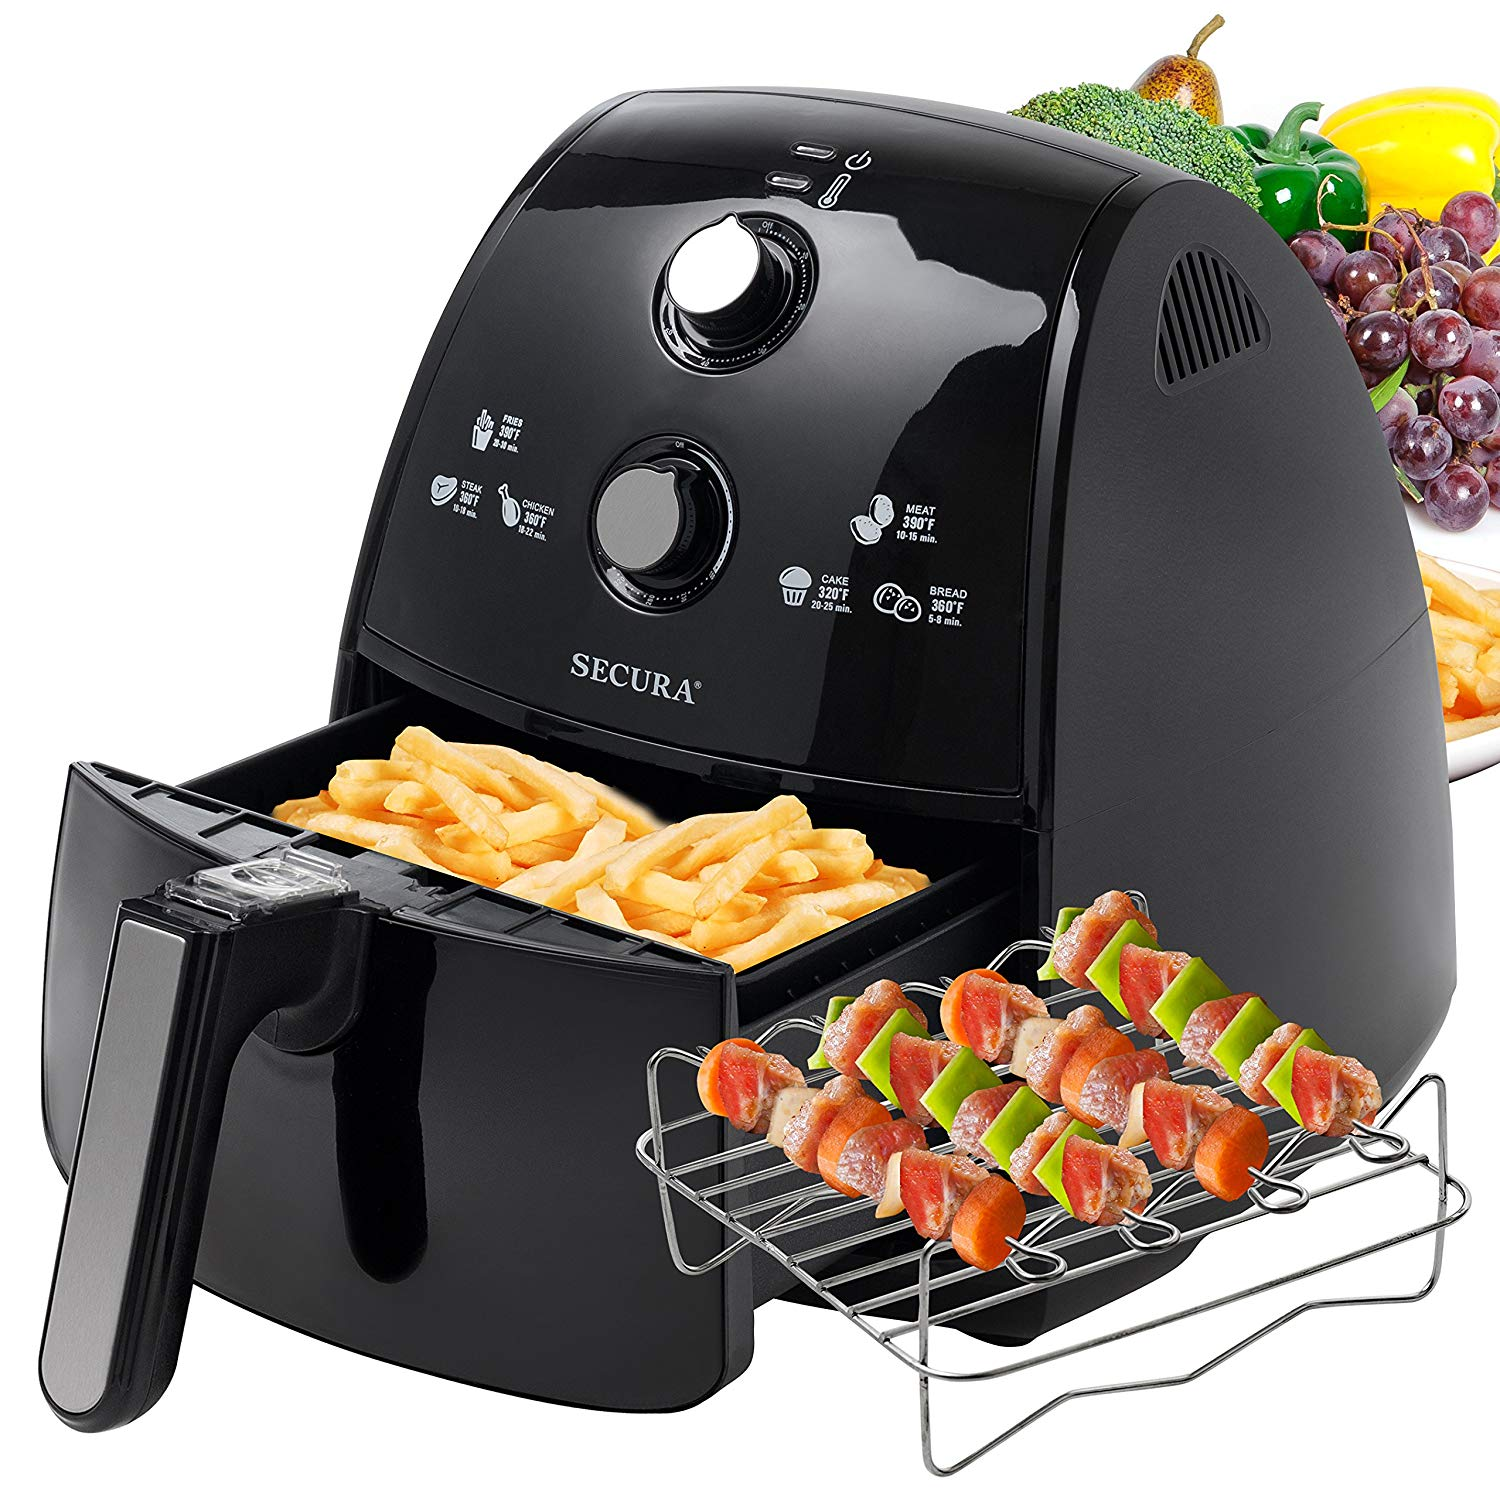 Top 10 Best Electric Air Fryers Reviews